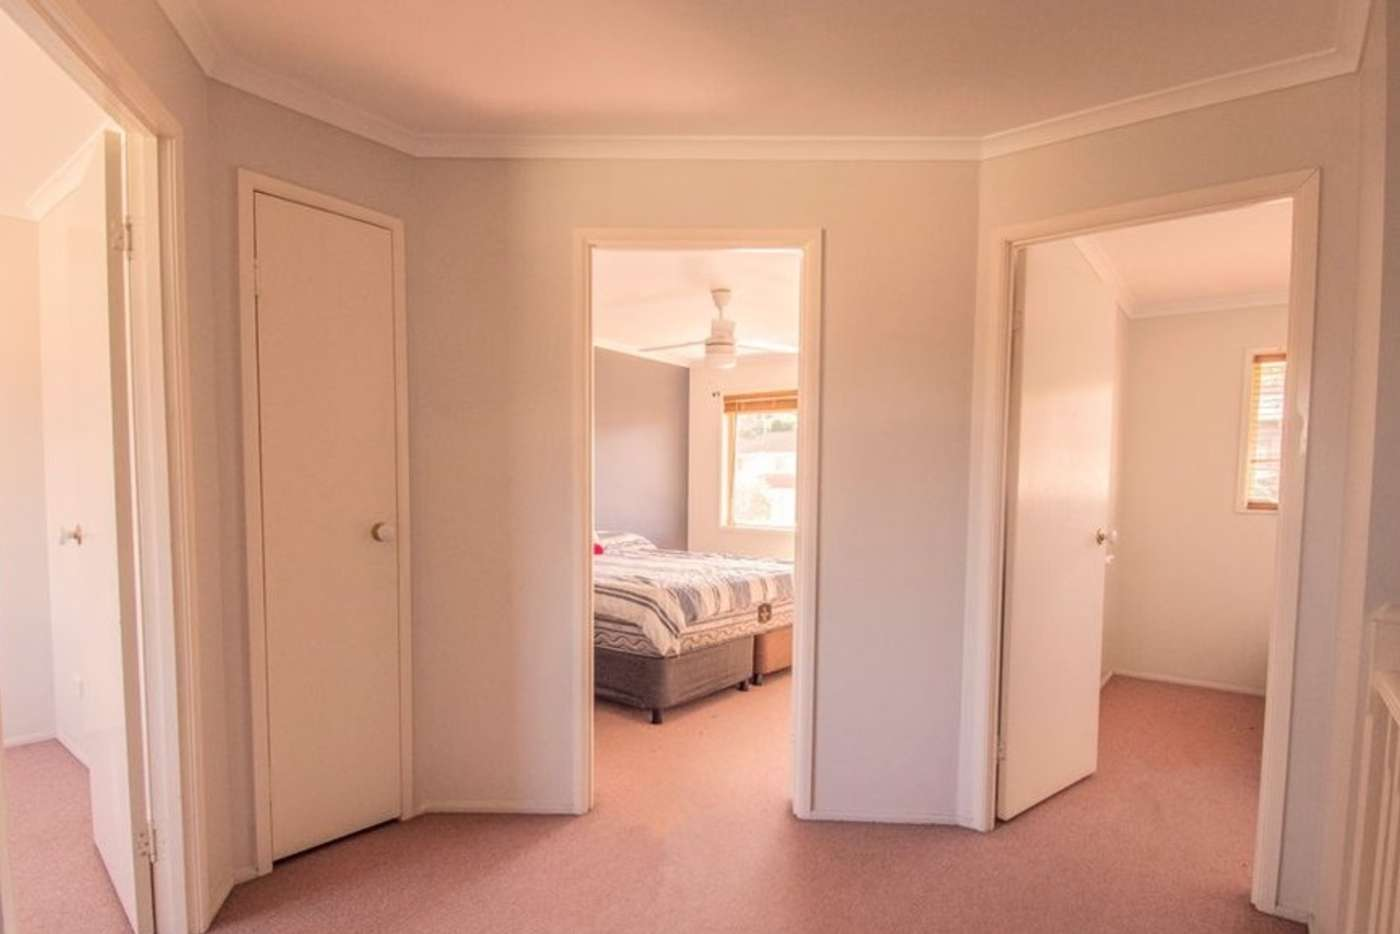 Seventh view of Homely house listing, 19/110 Johnson Rd, Hillcrest QLD 4118